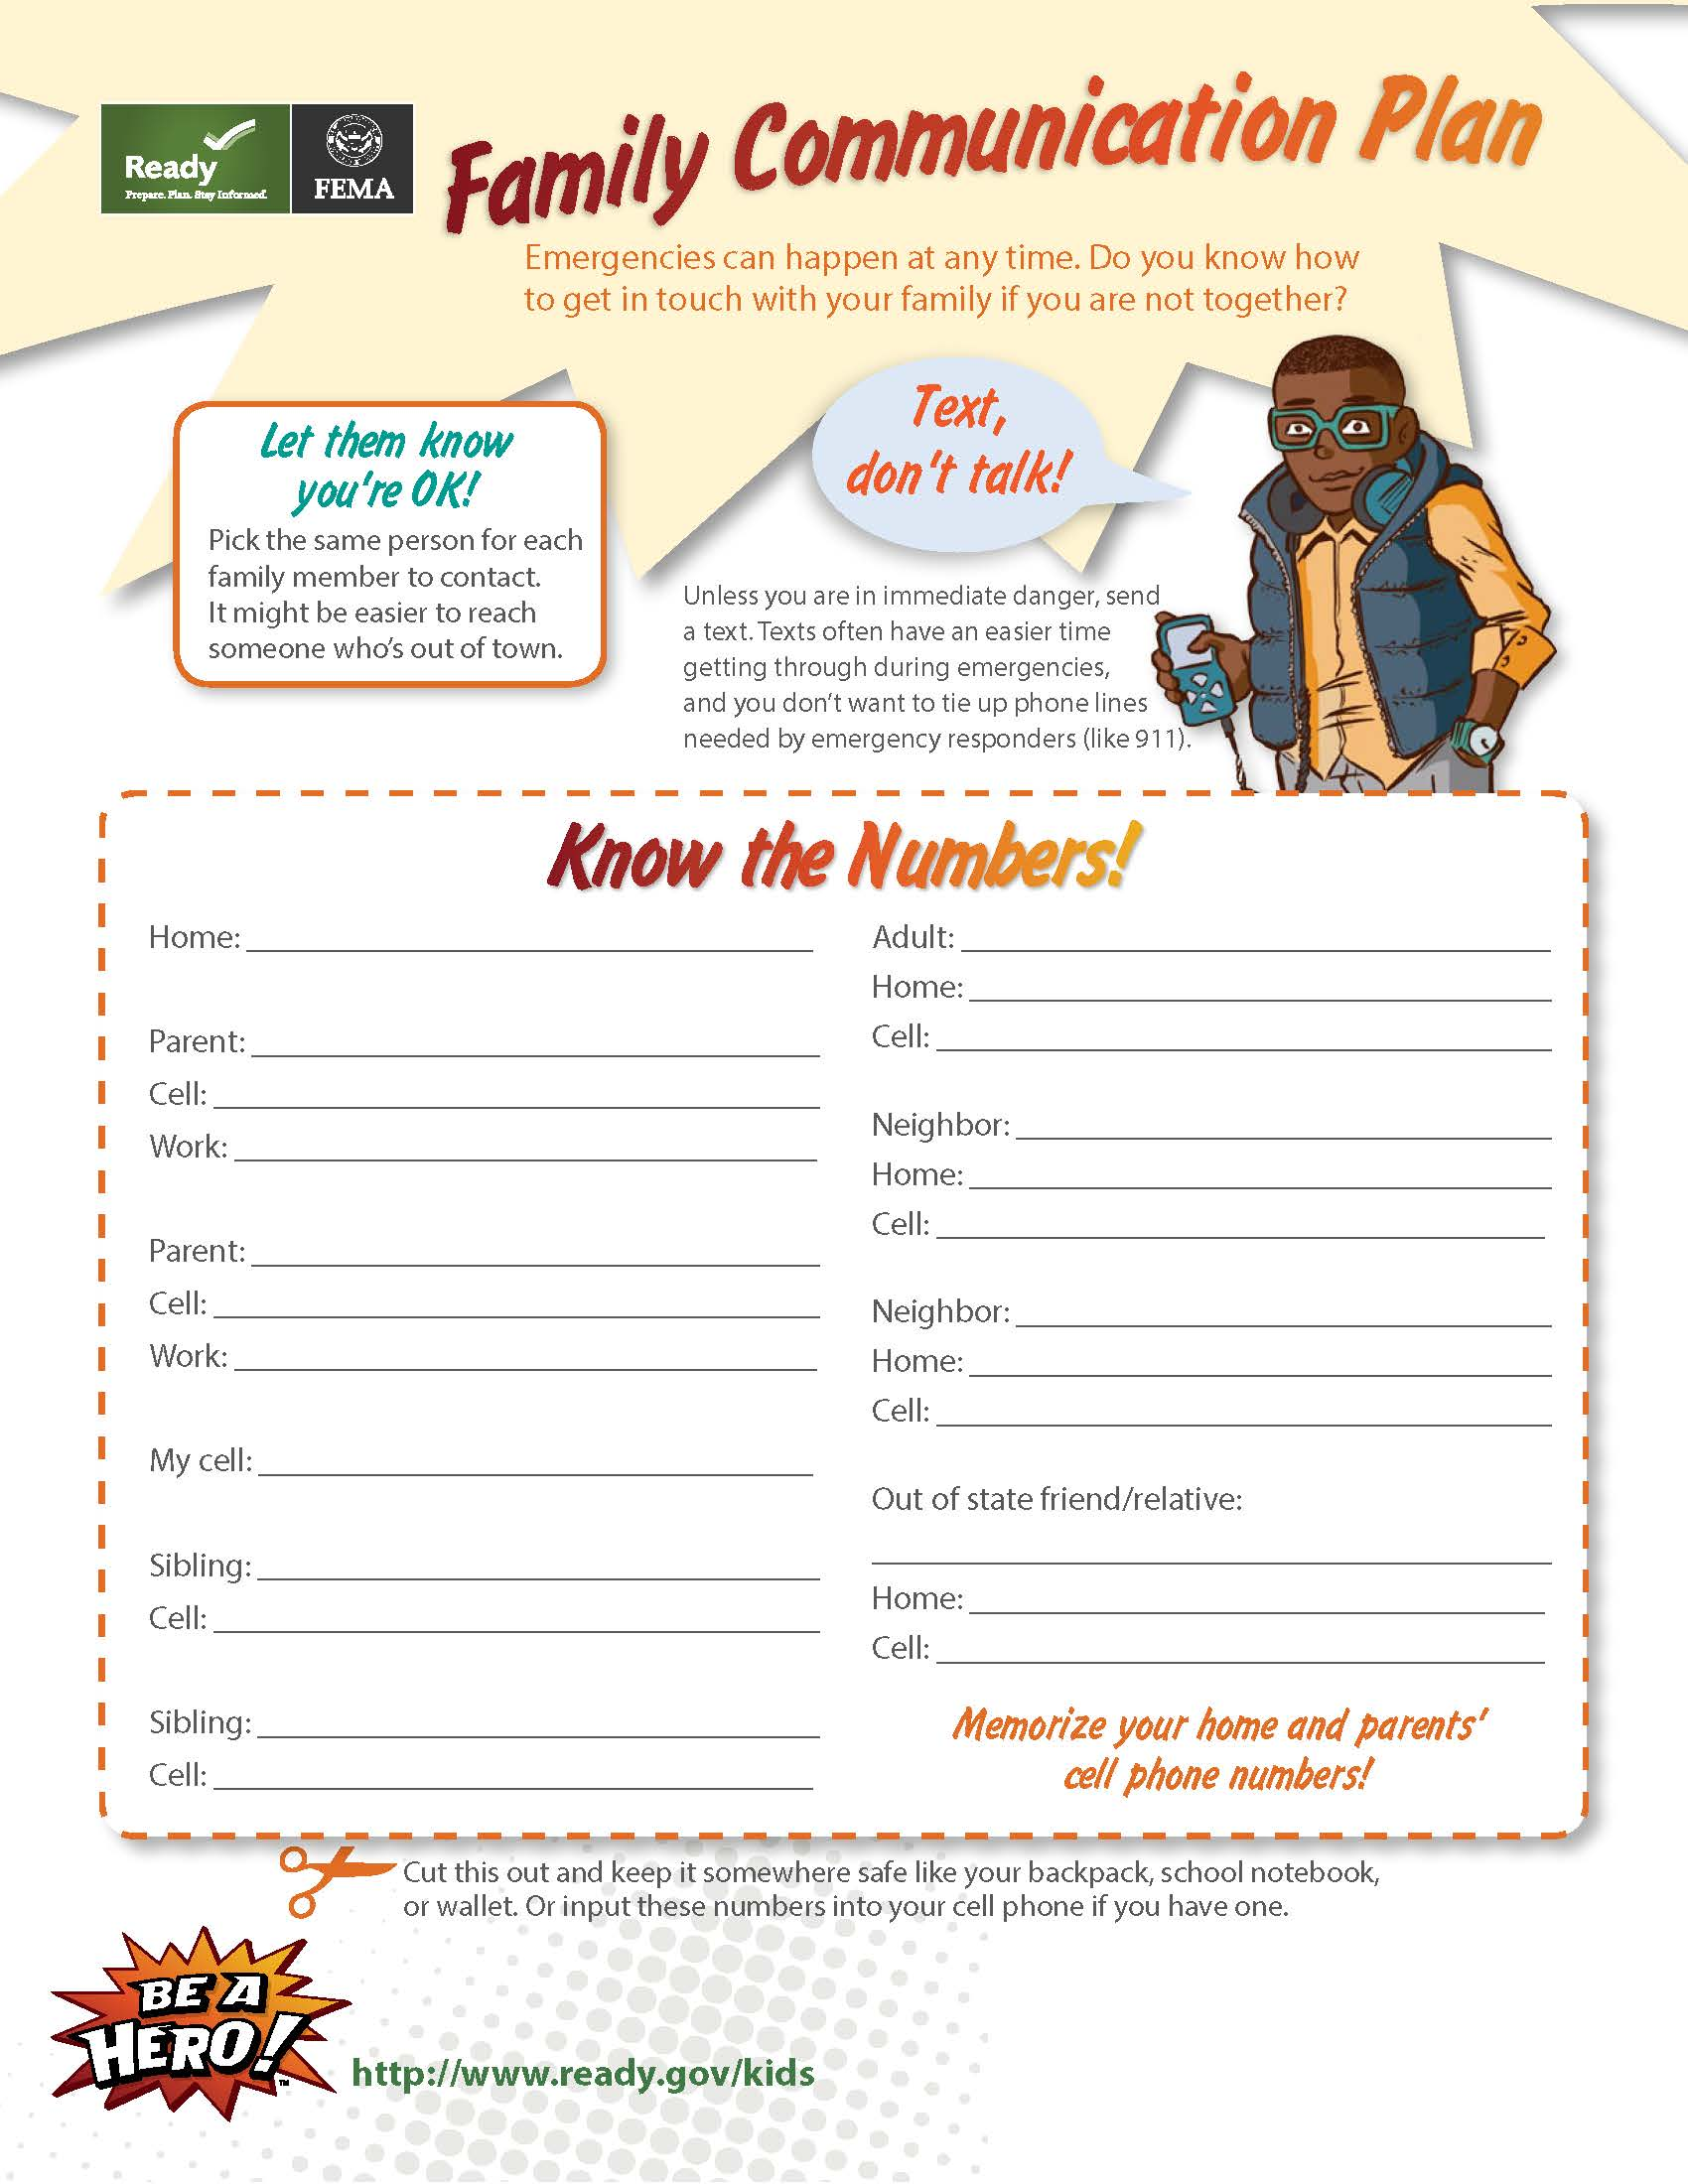 Printable worksheet for Kids